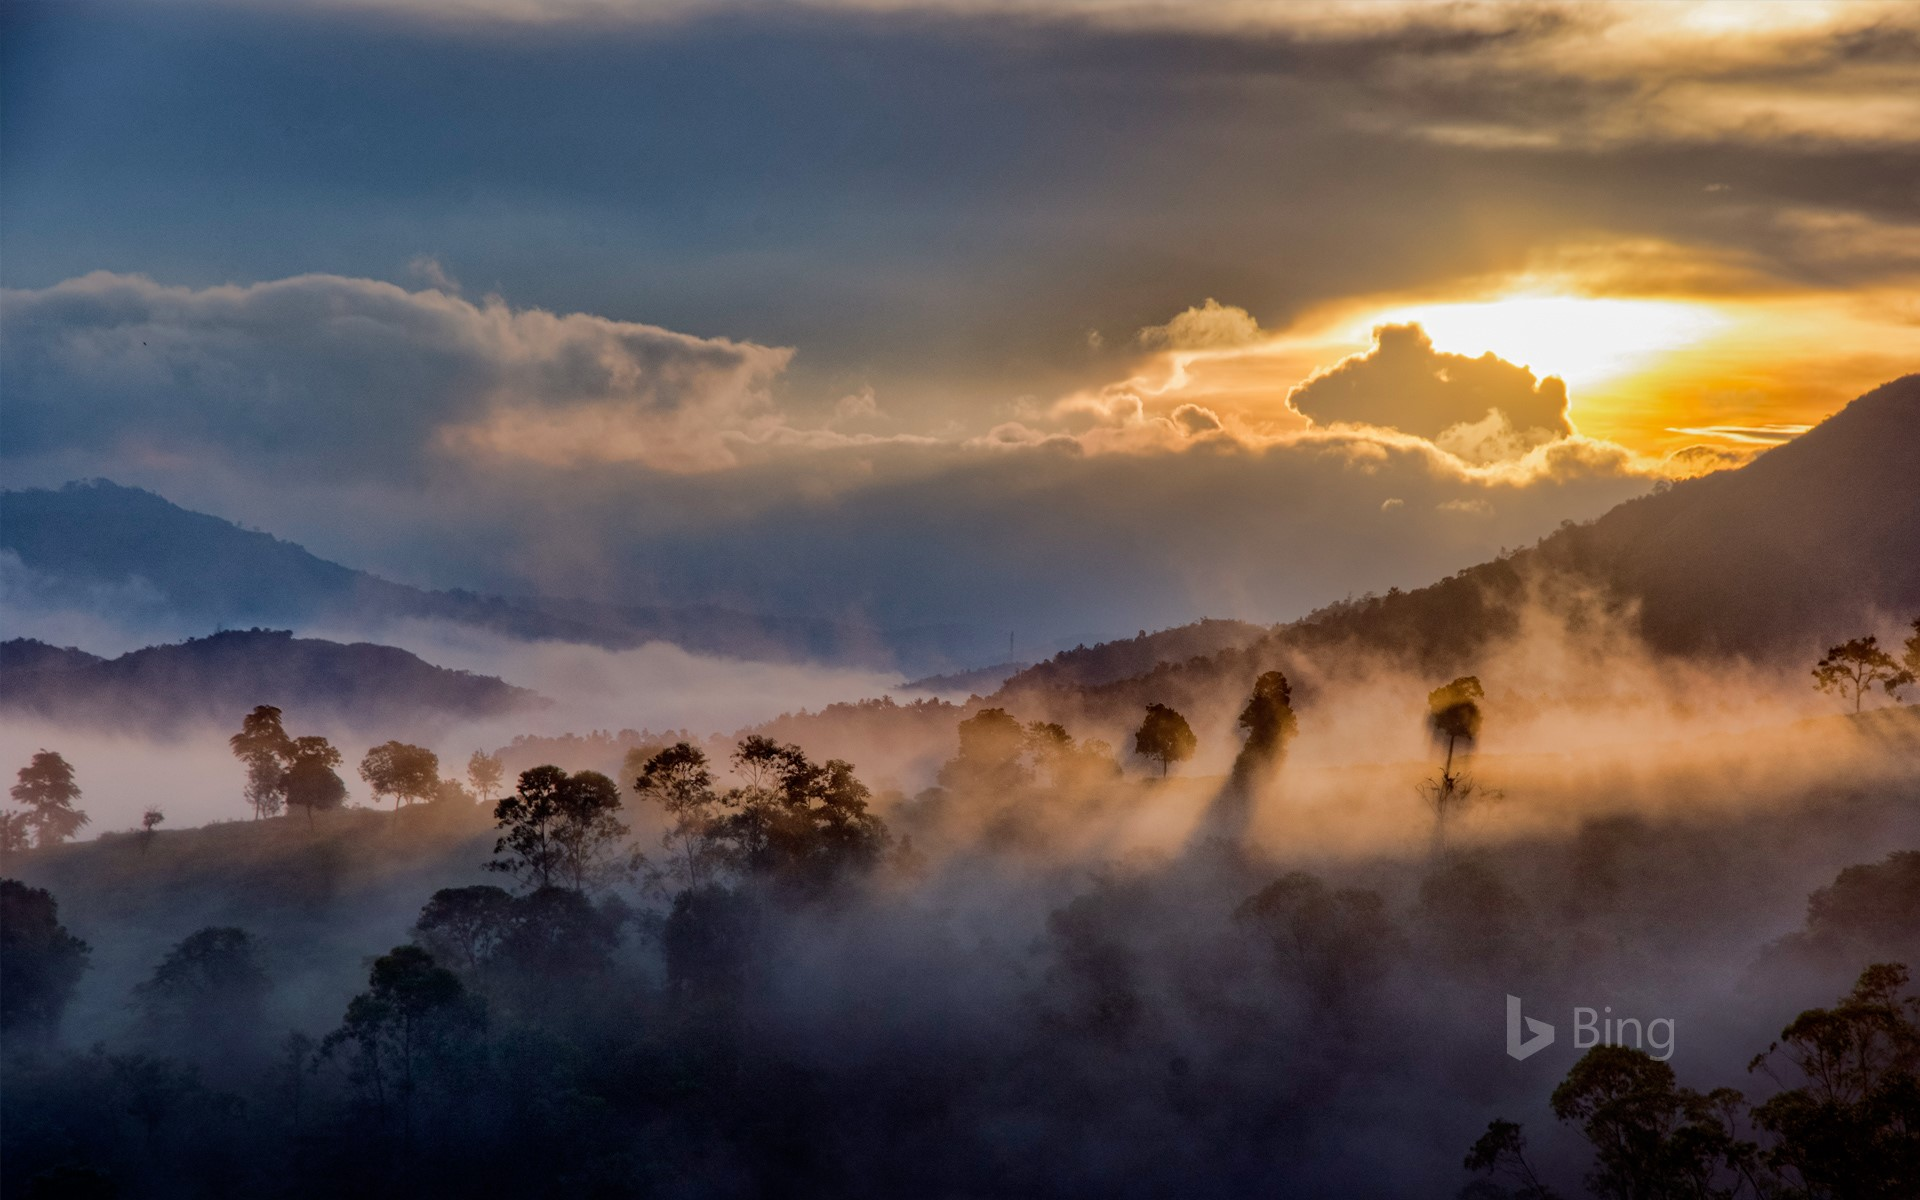 Mist over the forests of Idukki, Western Ghats, Kerala, India